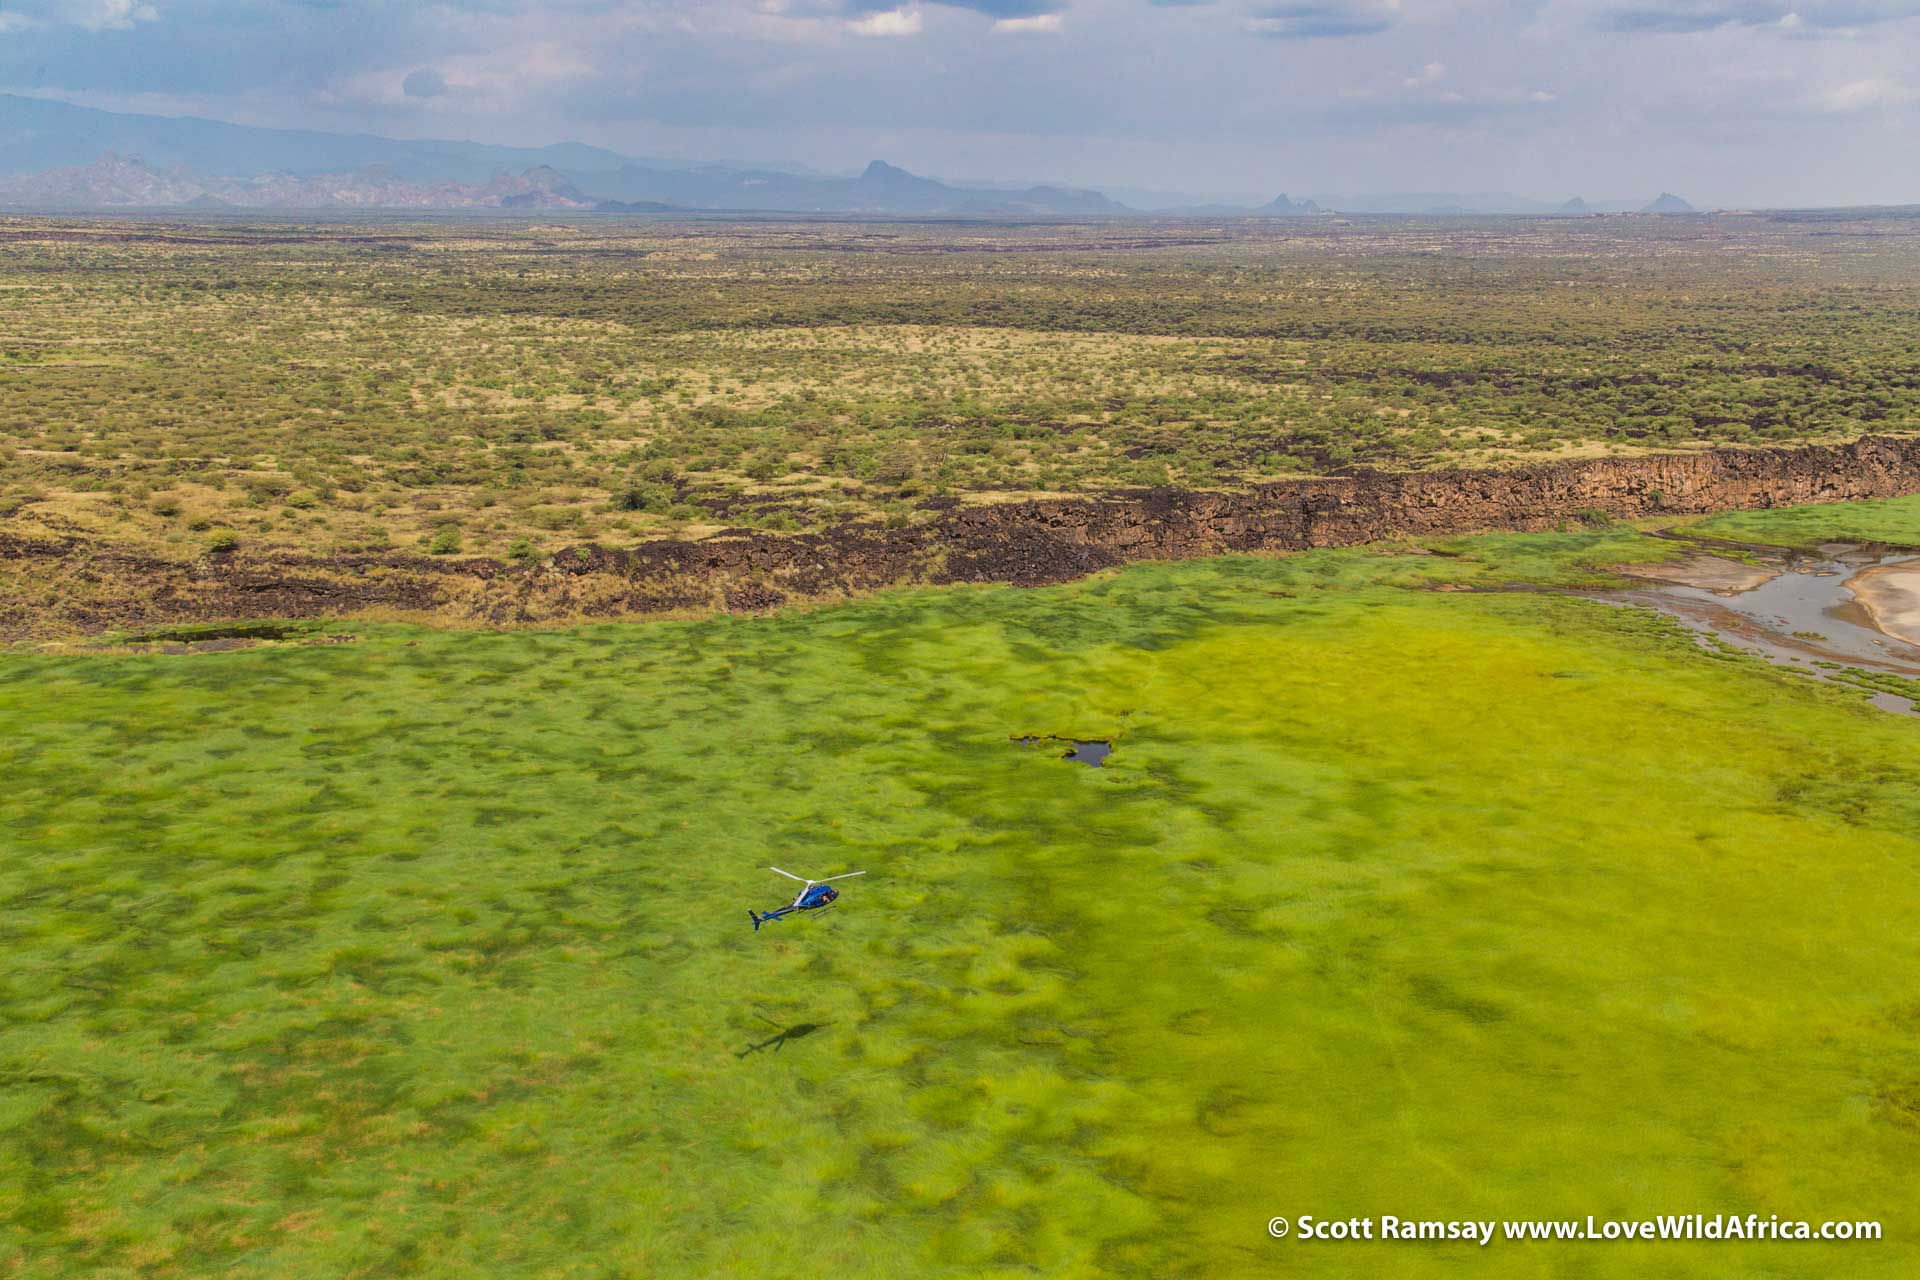 Continuing our journey south, flying over the green marshlands near the relevantly-named Croc Pools, where we did see some sizeable reptiles patrolling the waters.